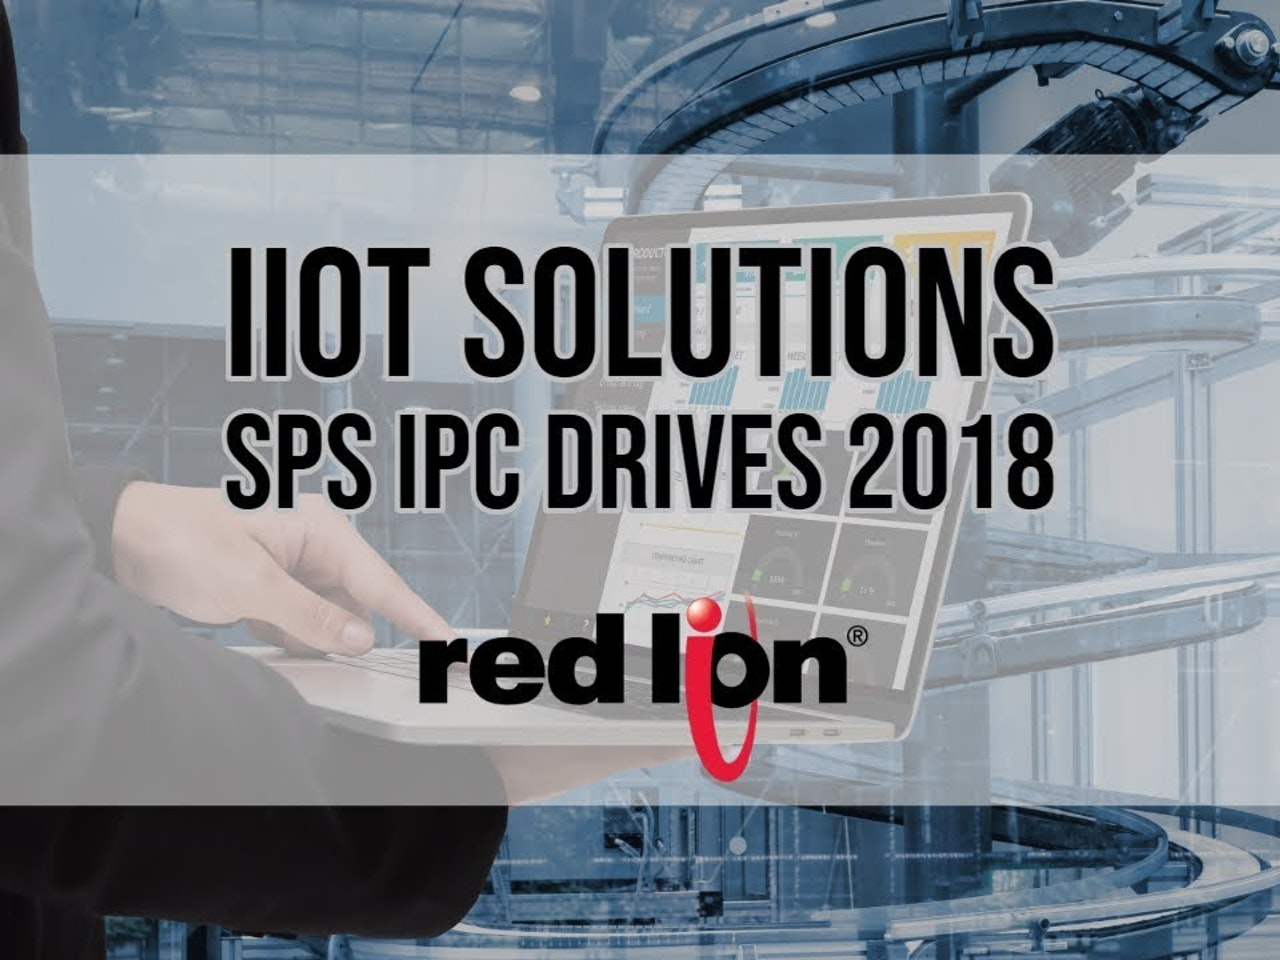 Red Lion's IIoT Solutions SPS IPC Overview